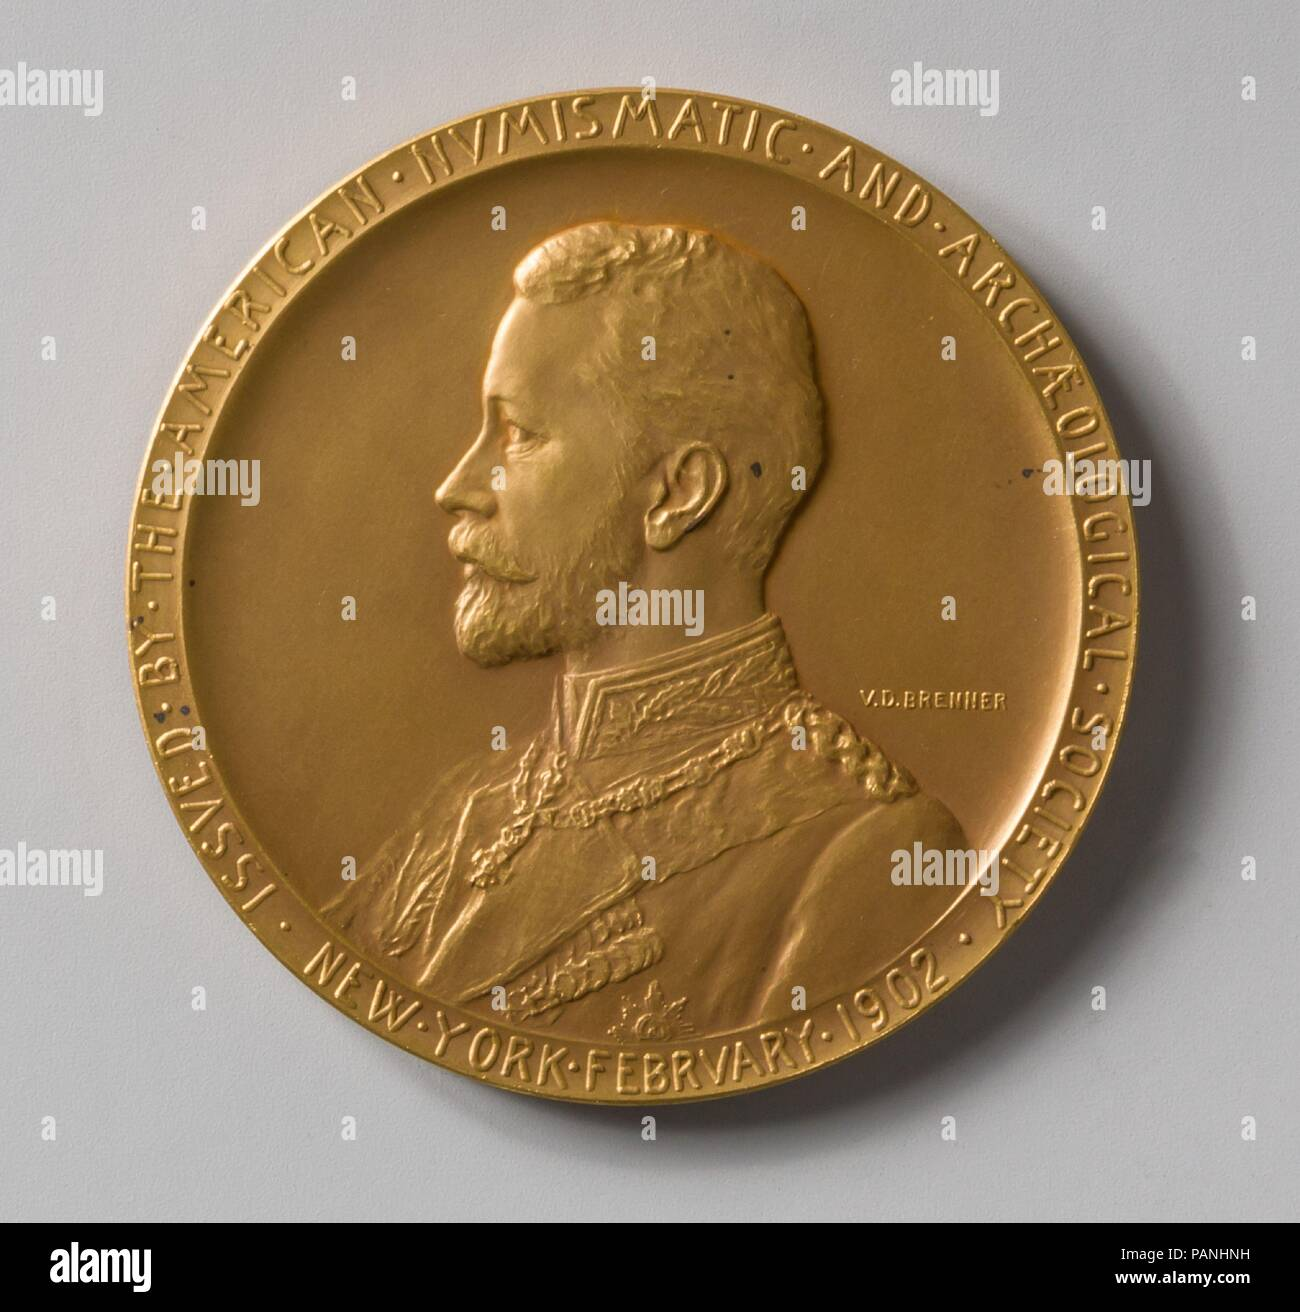 Prince Henry of Prussia. Artist: Victor David Brenner (American (born Lithuania), Kaunas 1871-1924 New York). Dimensions: Diam. 2 3/4 in. (7 cm). Date: 1902. Museum: Metropolitan Museum of Art, New York, USA. Stock Photo